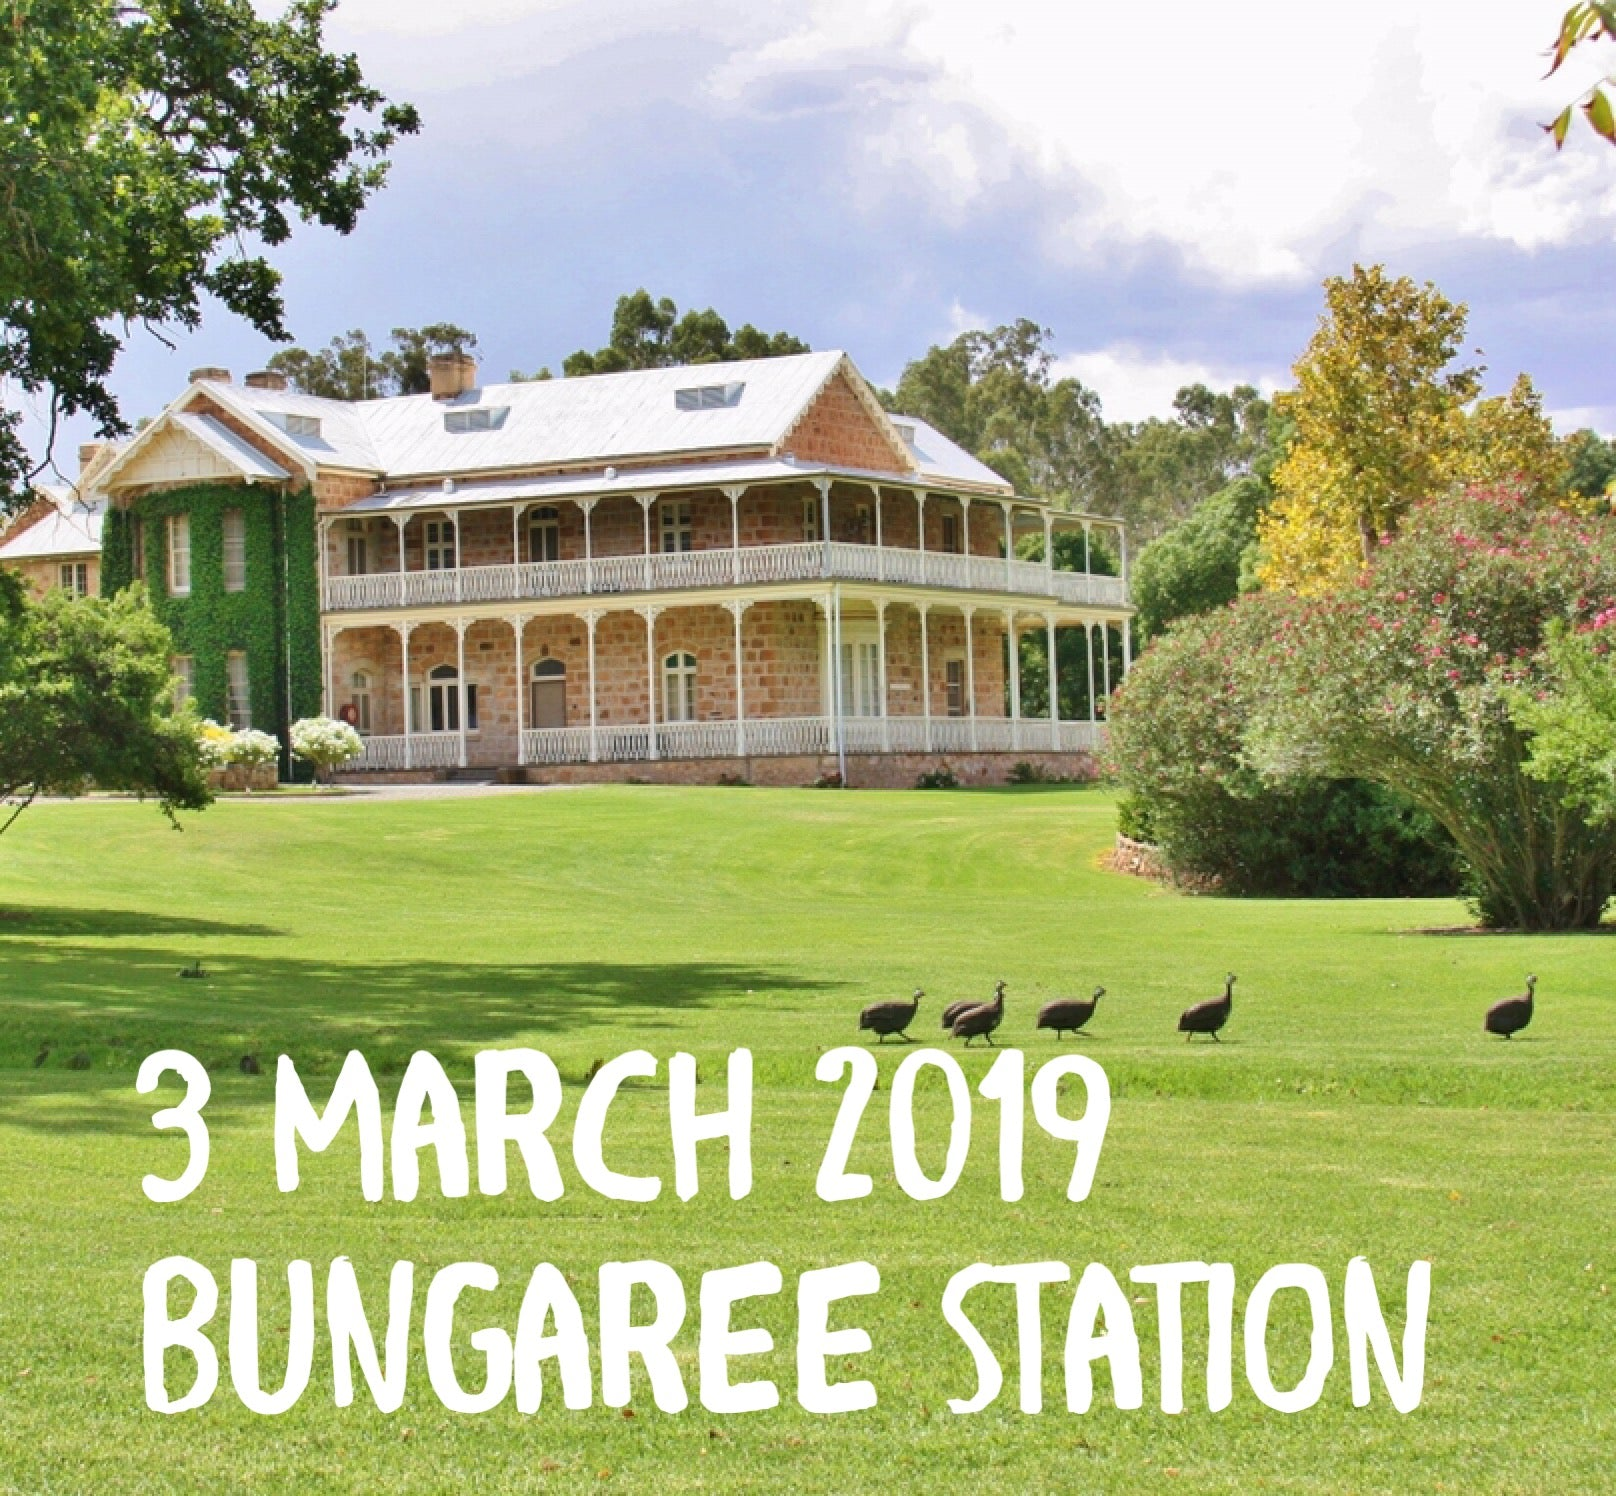 Paint and Plonk at Bungaree Station March 2019